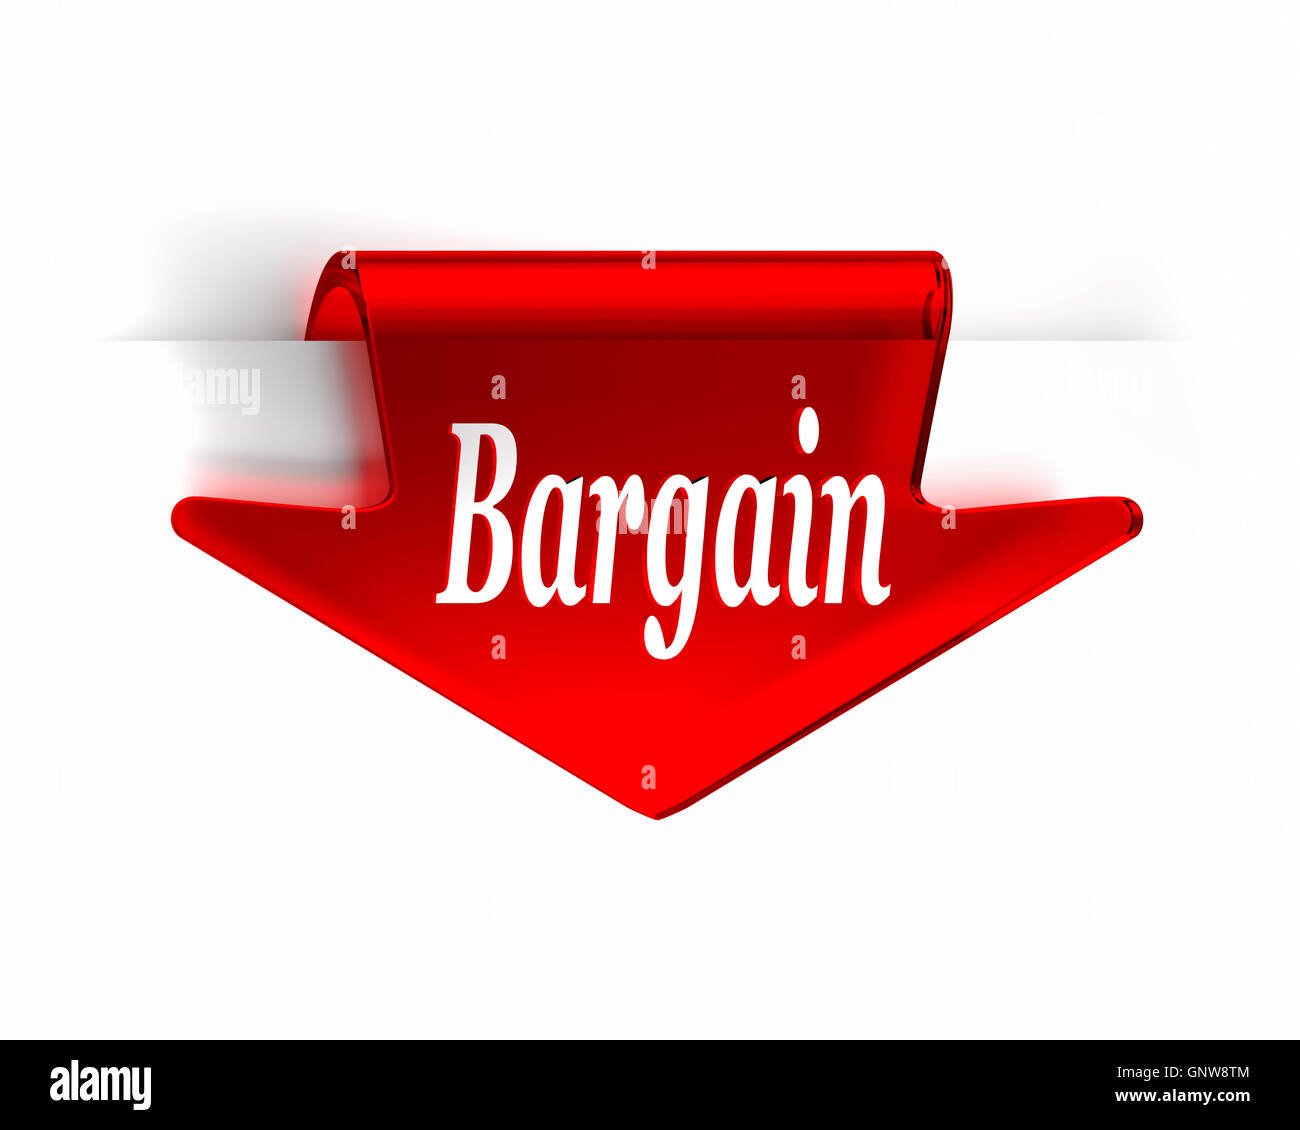 Bargain Red - Stock Image